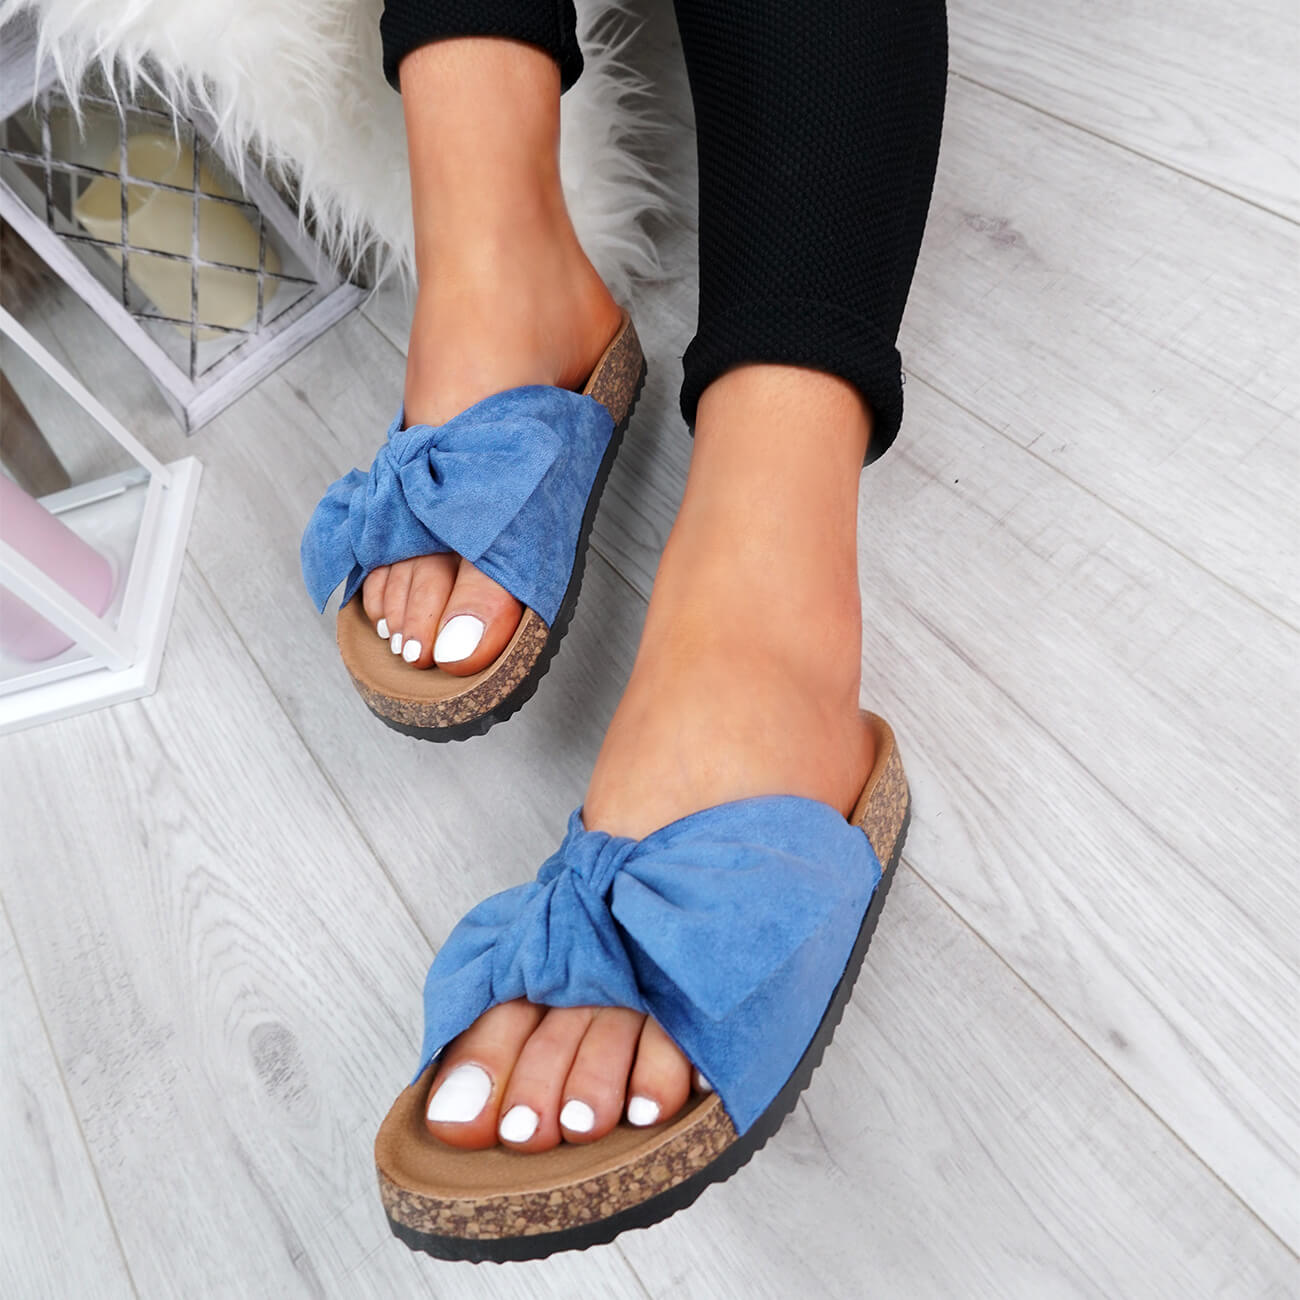 WOMENS-LADIES-SLIP-ON-FLAT-SANDALS-BOW-SLIDERS-SUMMER-CASUAL-SHOES-SIZE thumbnail 20